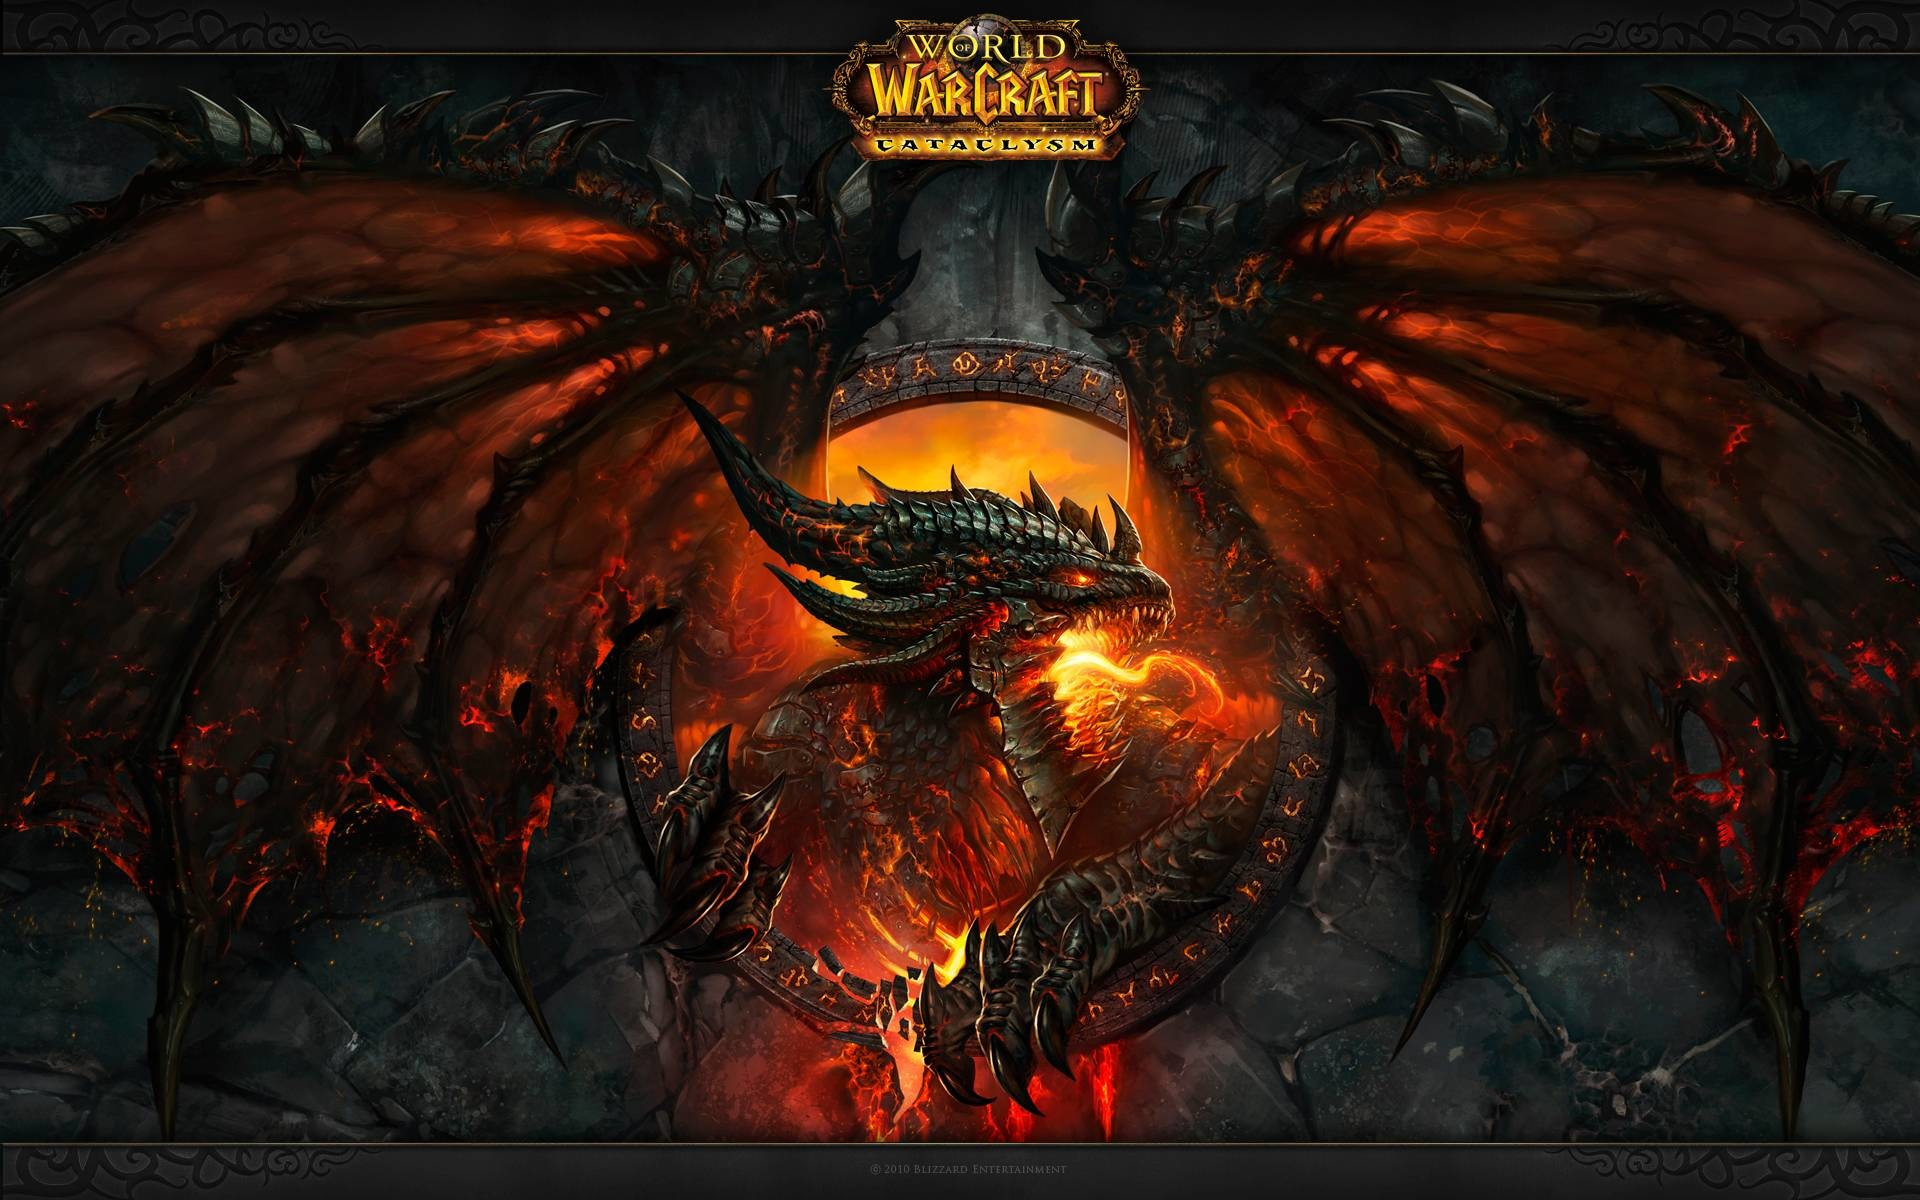 Res: 1920x1200, Blizzard Entertainment:World of Warcraft: Cataclysm